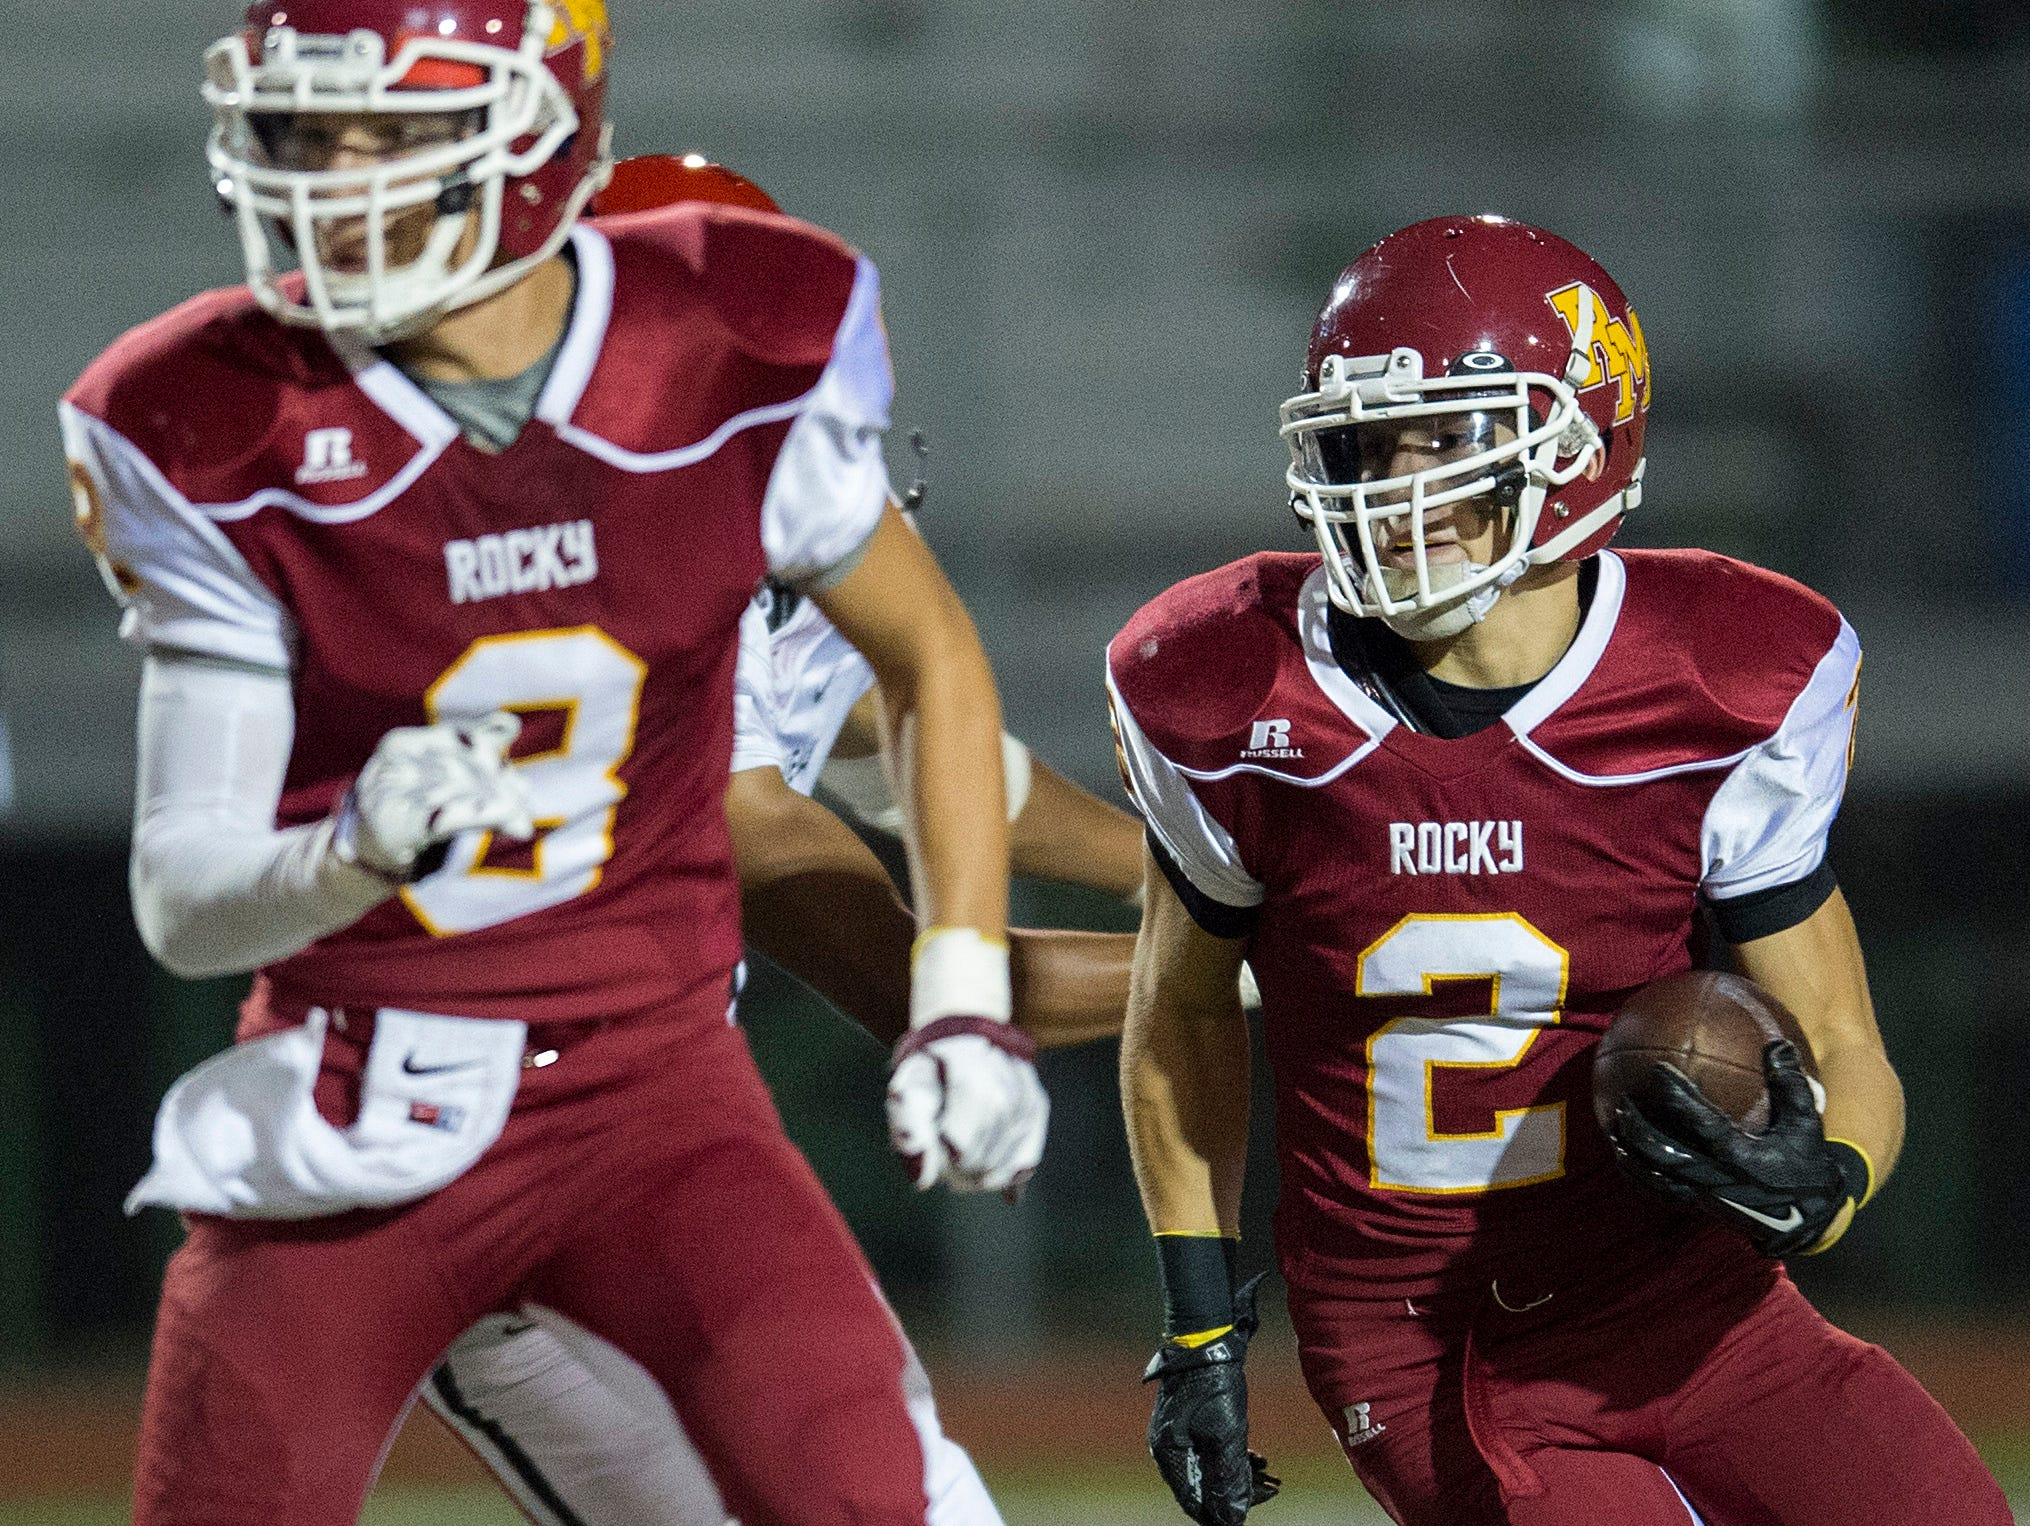 Jordan Williams of Rocky Mountain High School returns a Fairview punt during a game at French Field Thursday, October 8, 2015.